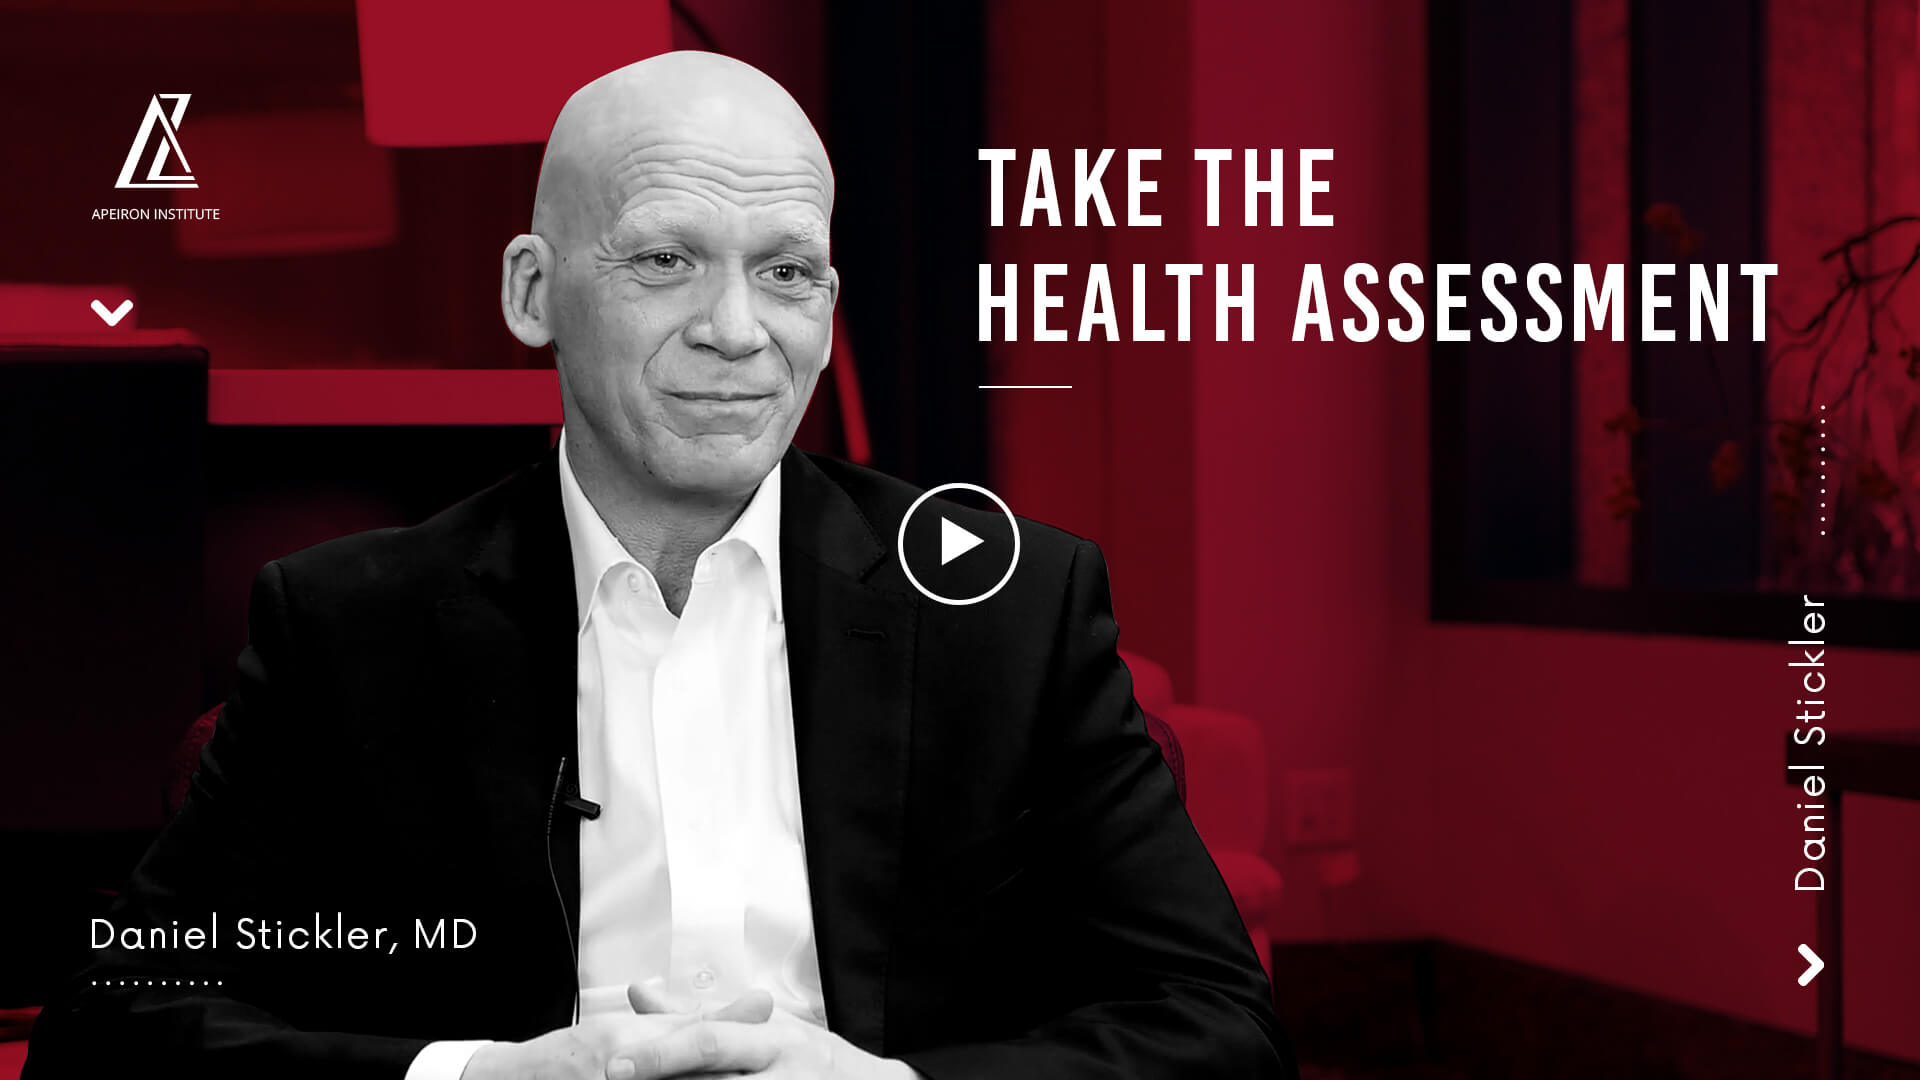 Take the Health Assessement